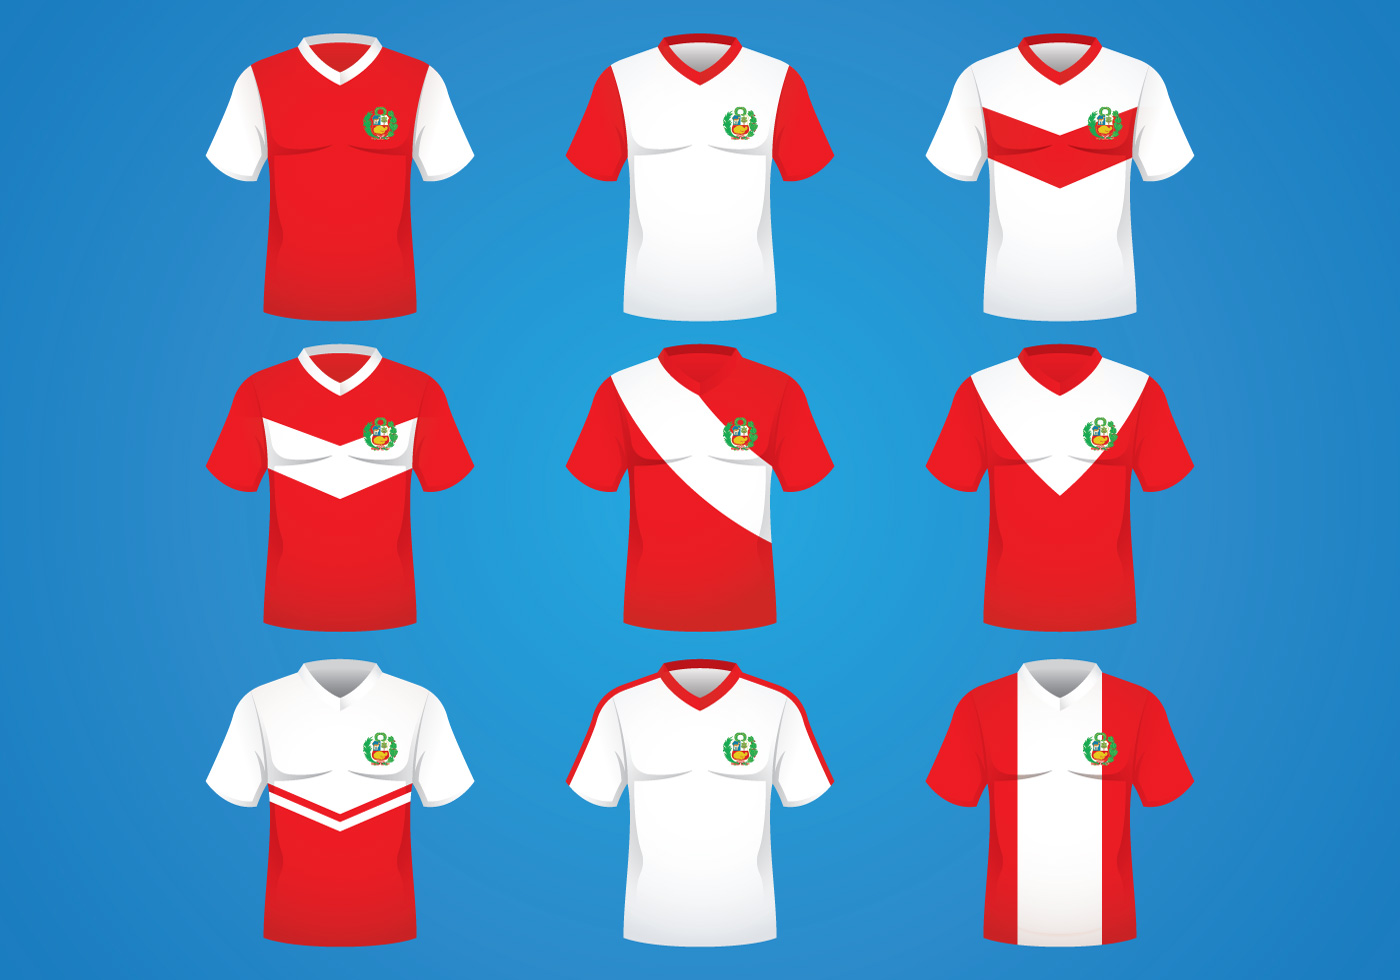 Sports Jersey Free Vector Art - (6620 Free Downloads) ecc19d512